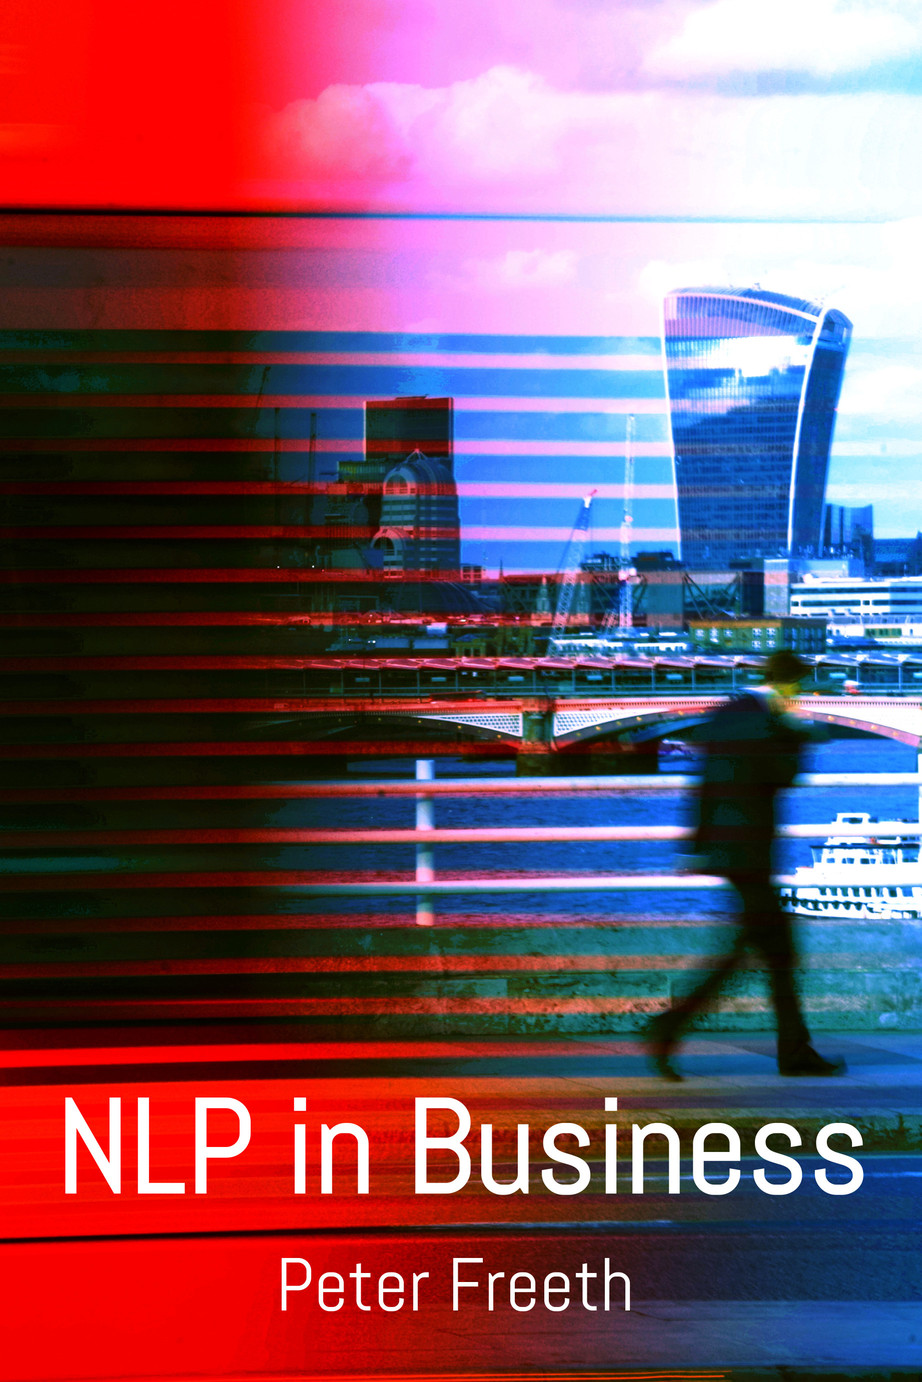 NLP in Business by Peter Freeth.  NLP in Business is the everyday, practical companion guide that helps you to apply the principles and techniques of NLP in your professional environment, easily, powerfully and elegantly, with full, in-depth sections devoted to a range of valuable business applications.